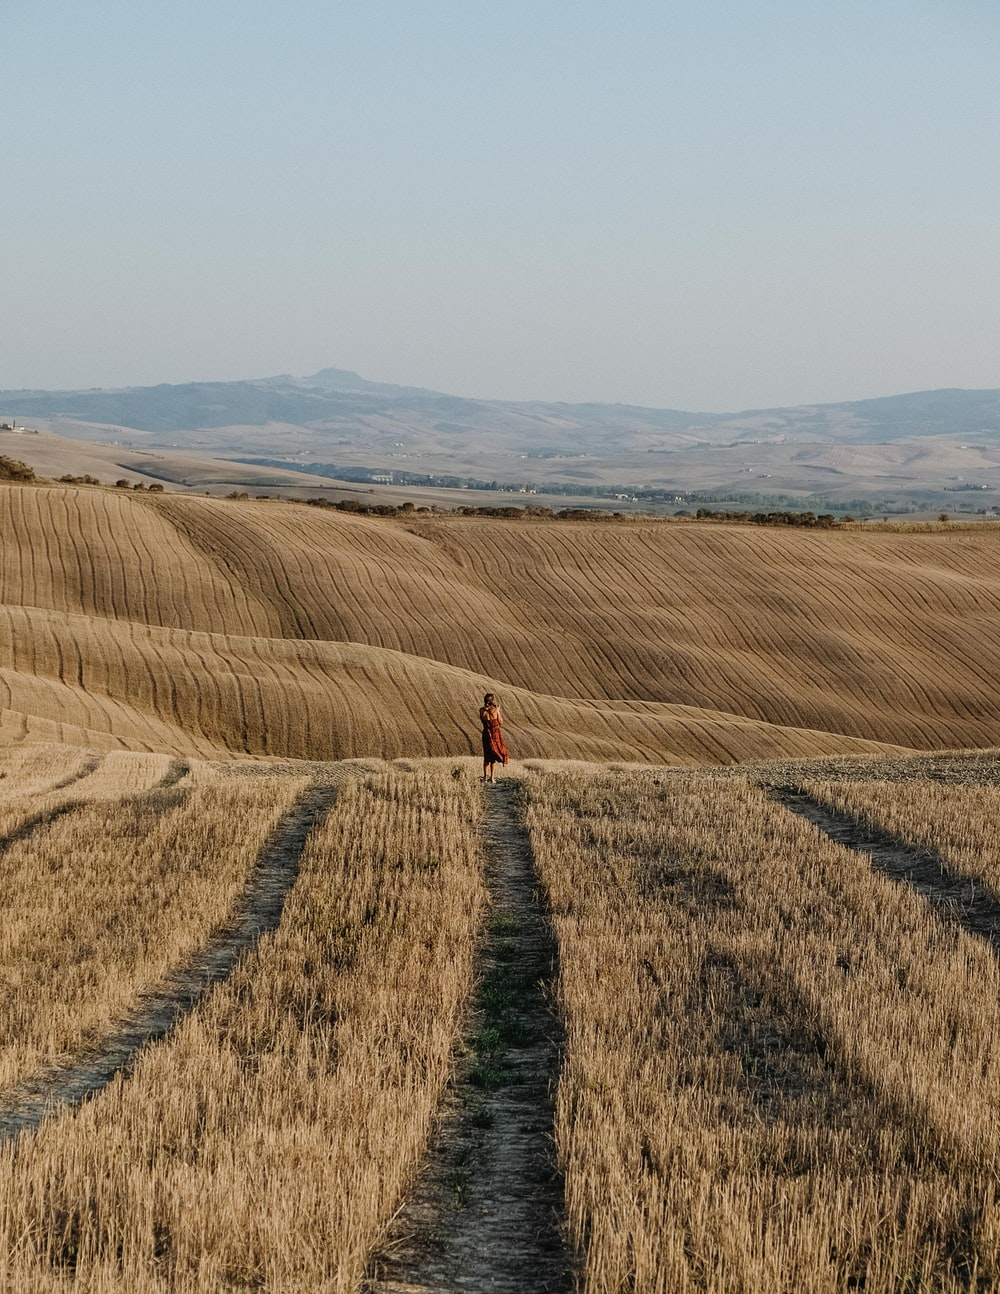 person in red jacket walking on brown field during daytime